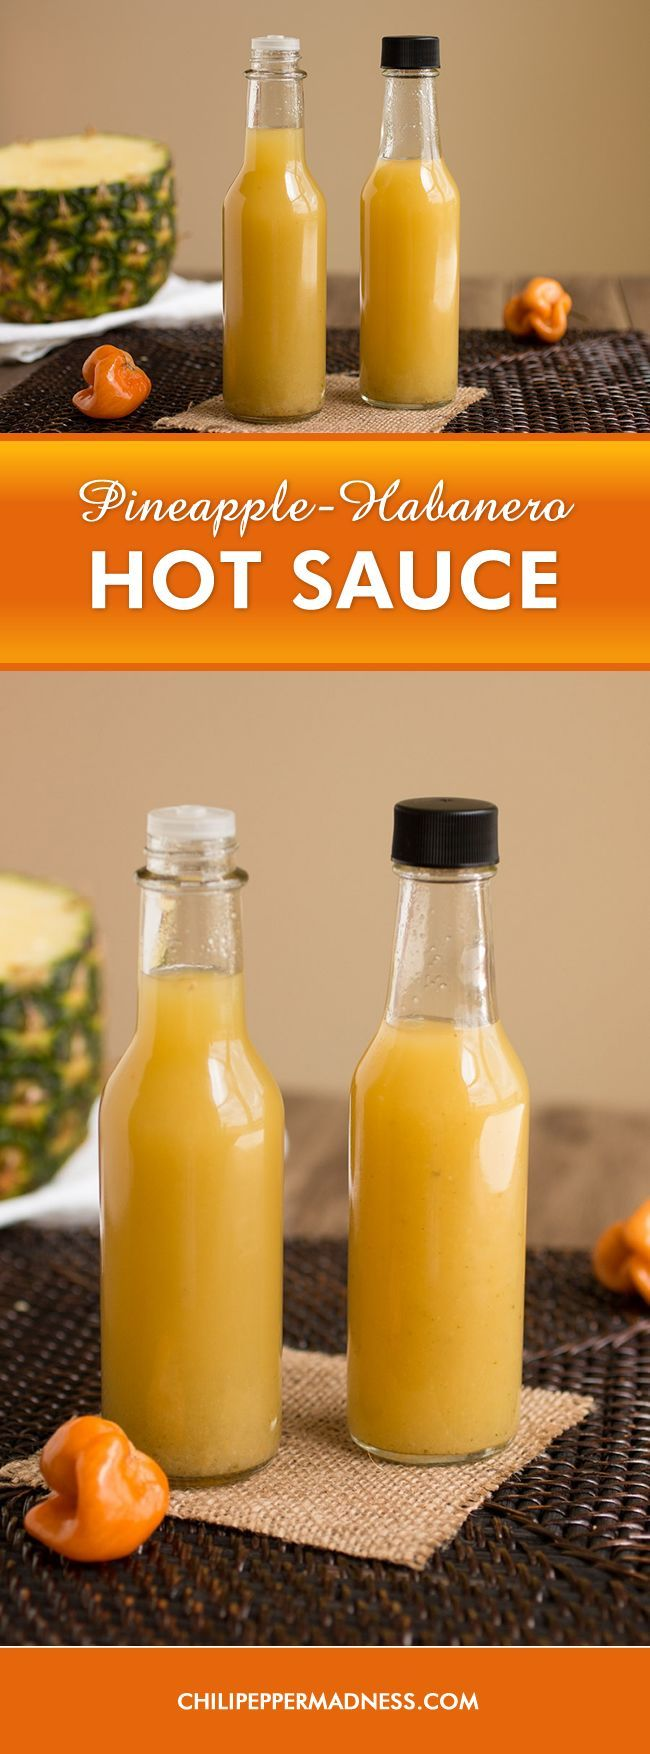 Pineapple-Habanero Hot Sauce – Homemade hot sauce made with spicy habanero peppers, sweet pineapple and cilantro. Perfect for dashing over meals or spicing up your favorite cocktails. We like it for our Bloody Marys.  We have a video of this recipe on the site as well. Stop on by!